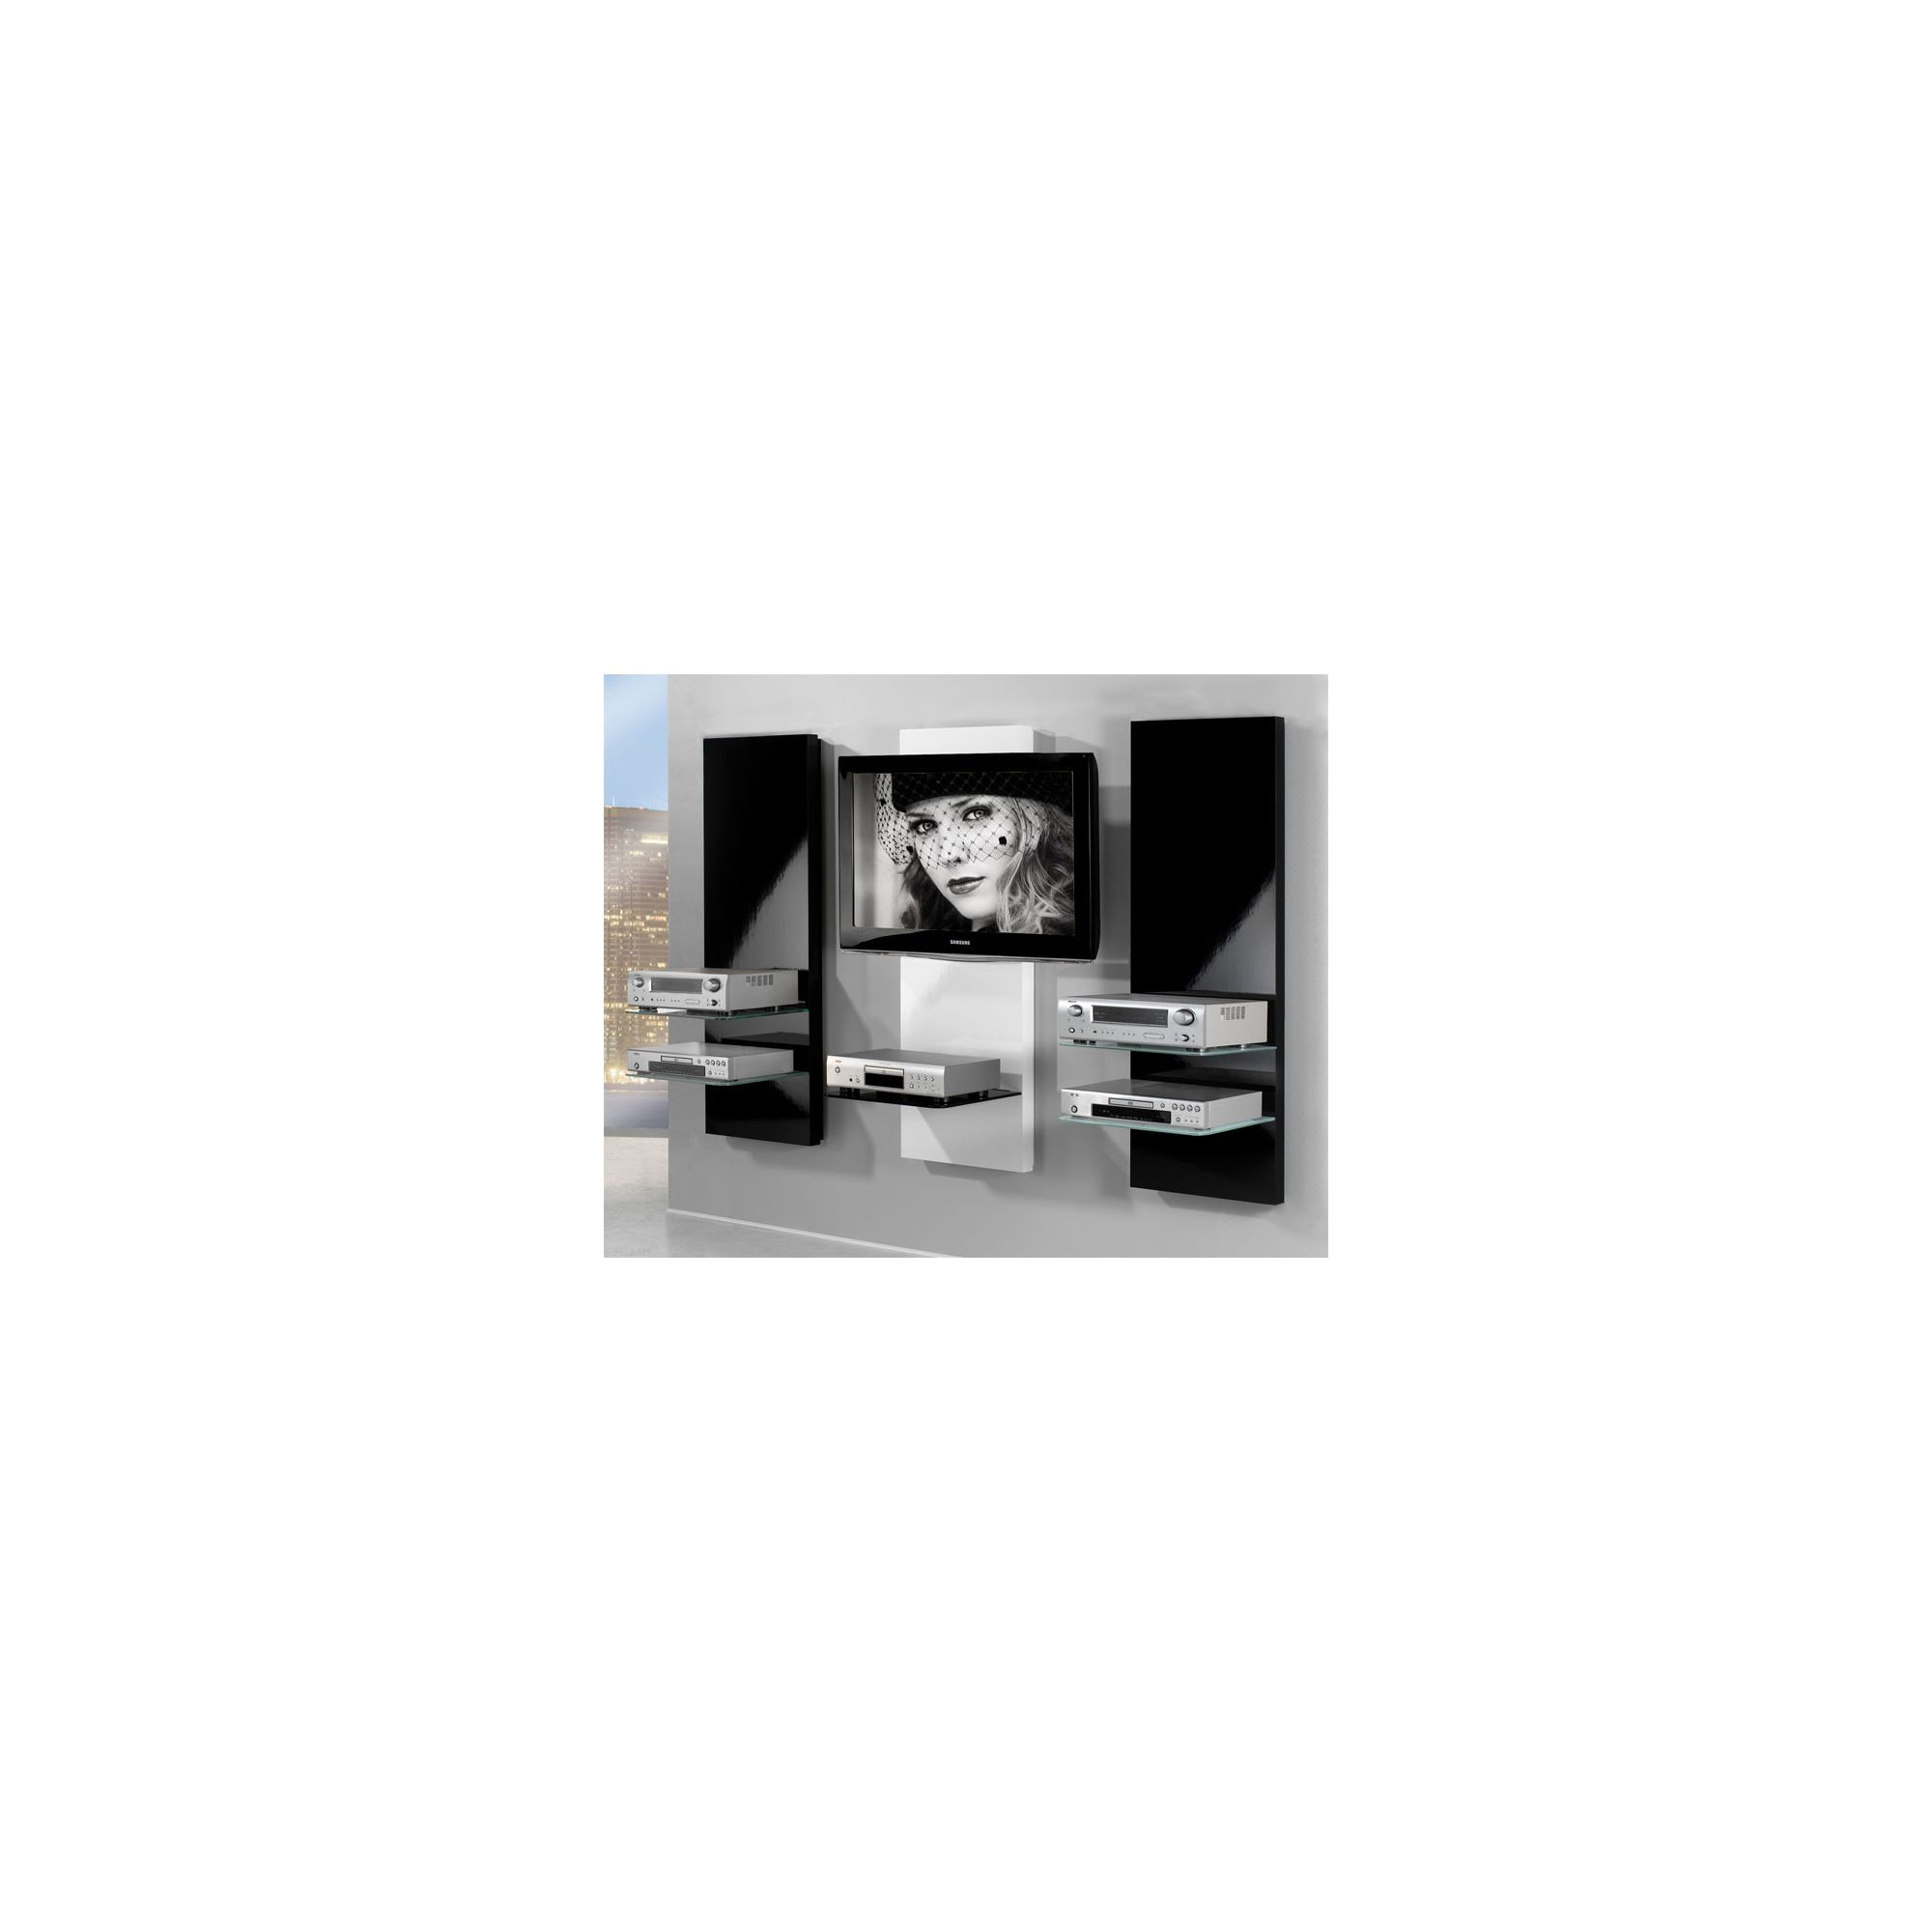 Triskom Wooden TV Stand for LCD / Plasmas with Bracket - Black Centre with White Sides at Tesco Direct